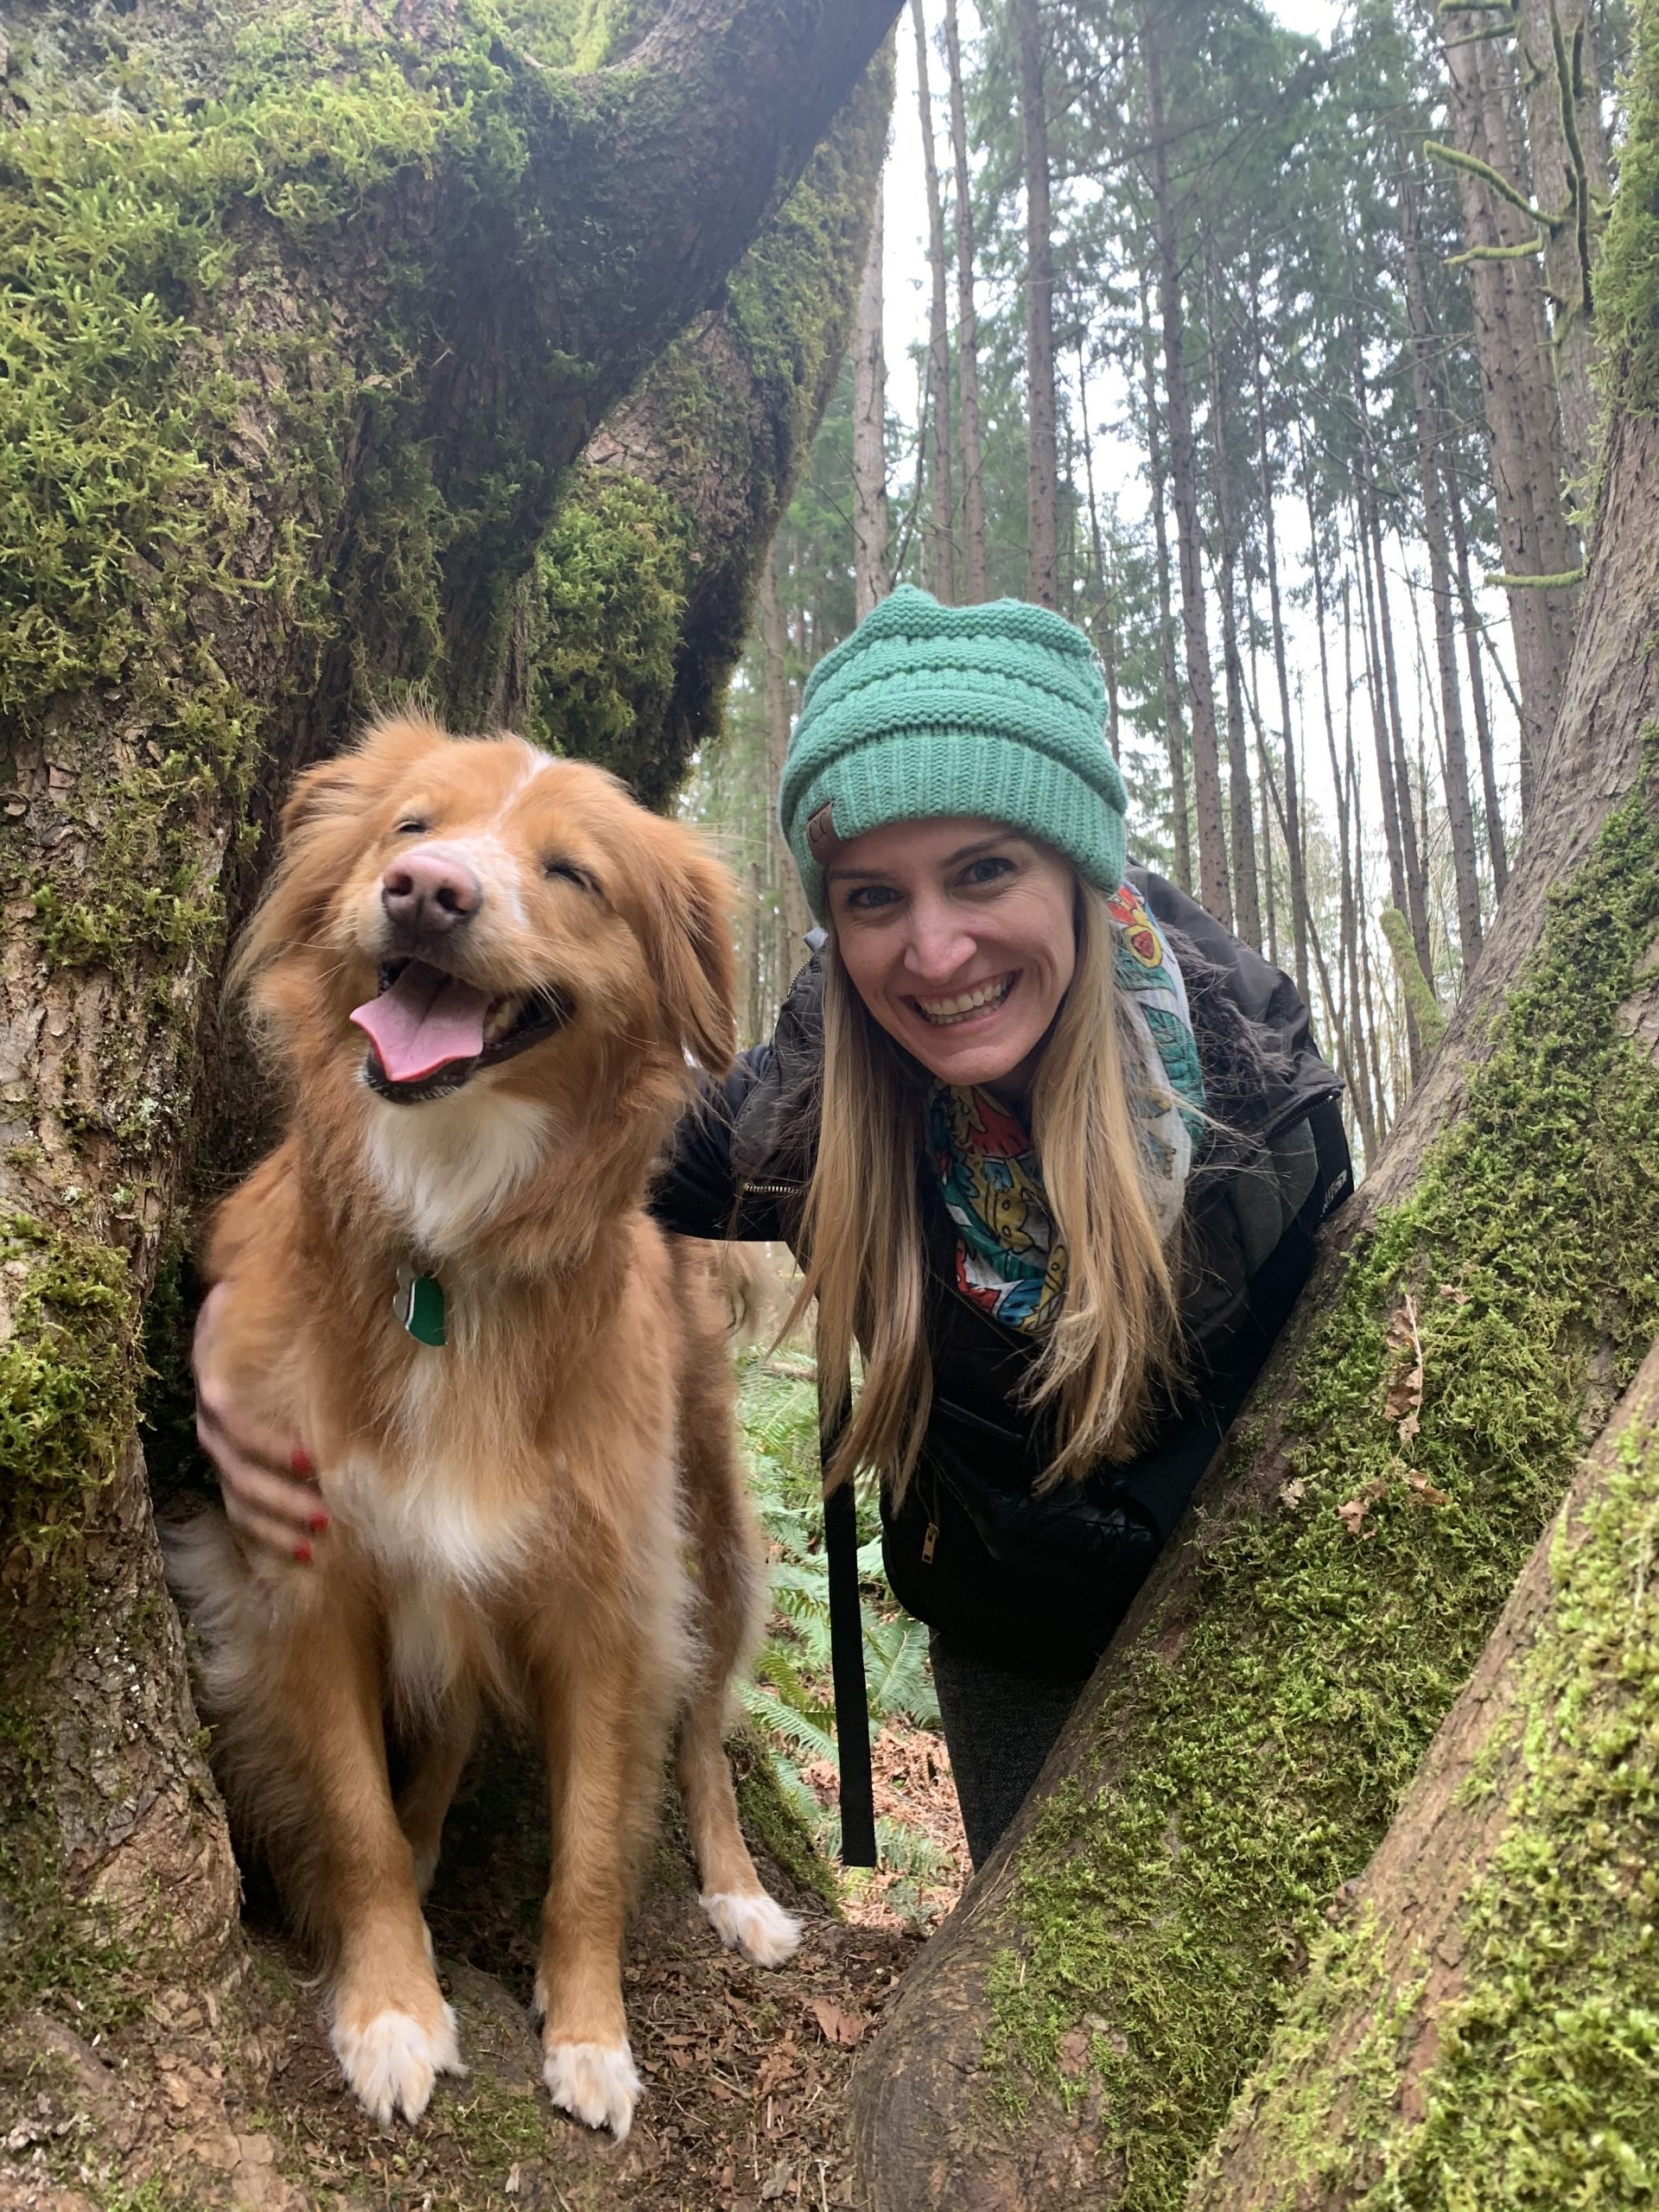 woman in hat in a tree with blonde medium hair dog